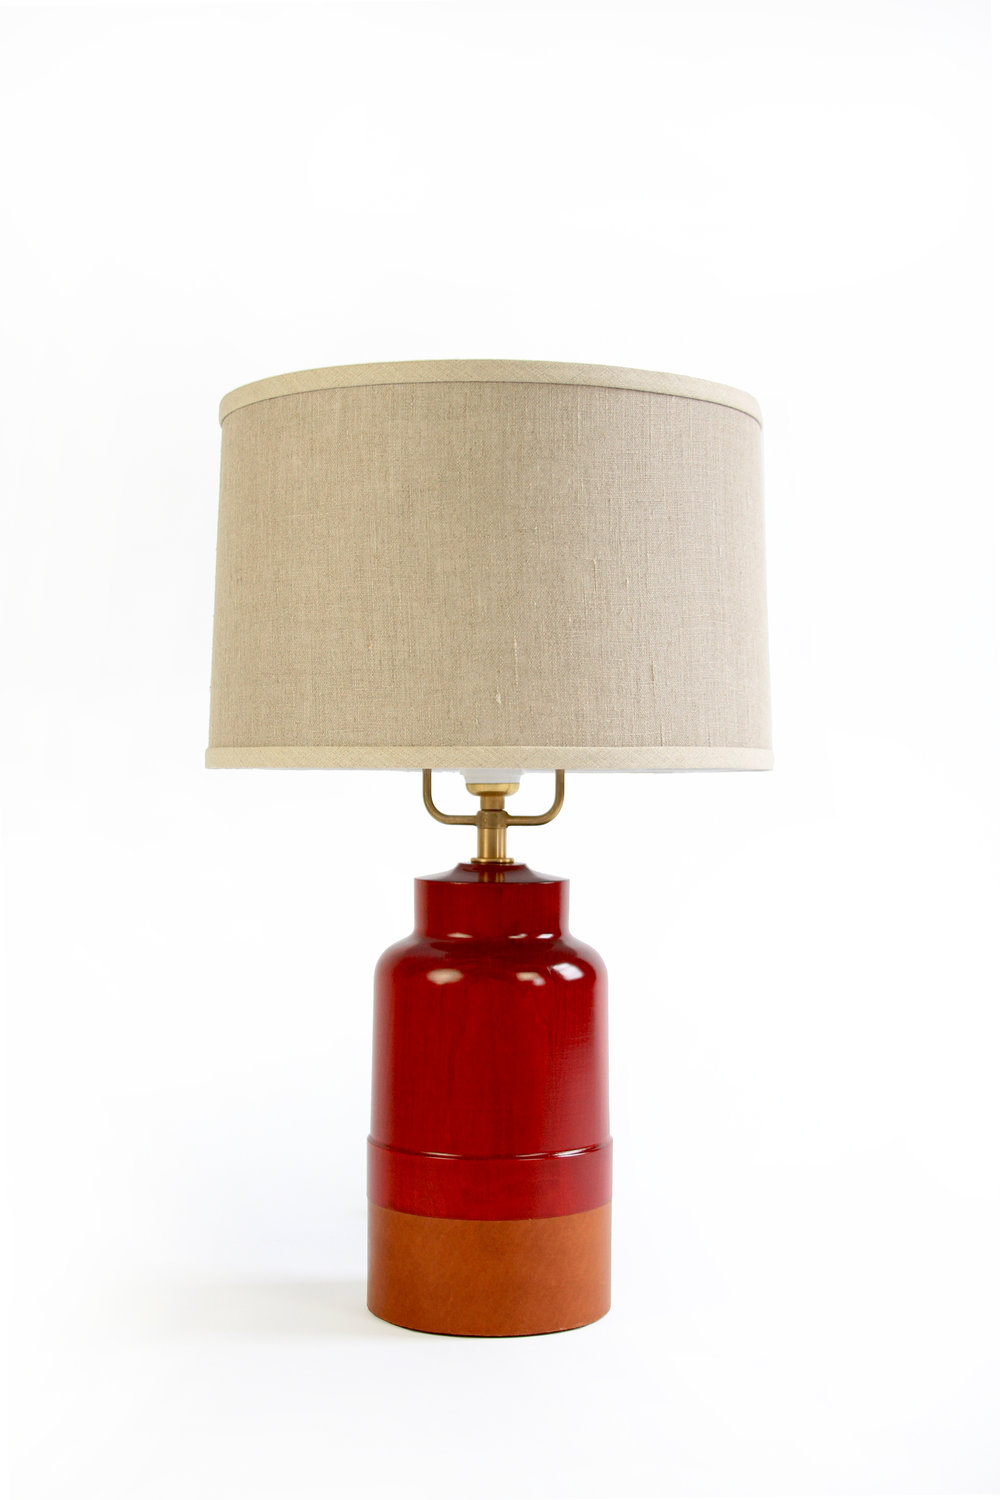 TIVERTON-LAMP-OXBLOOD.jpg